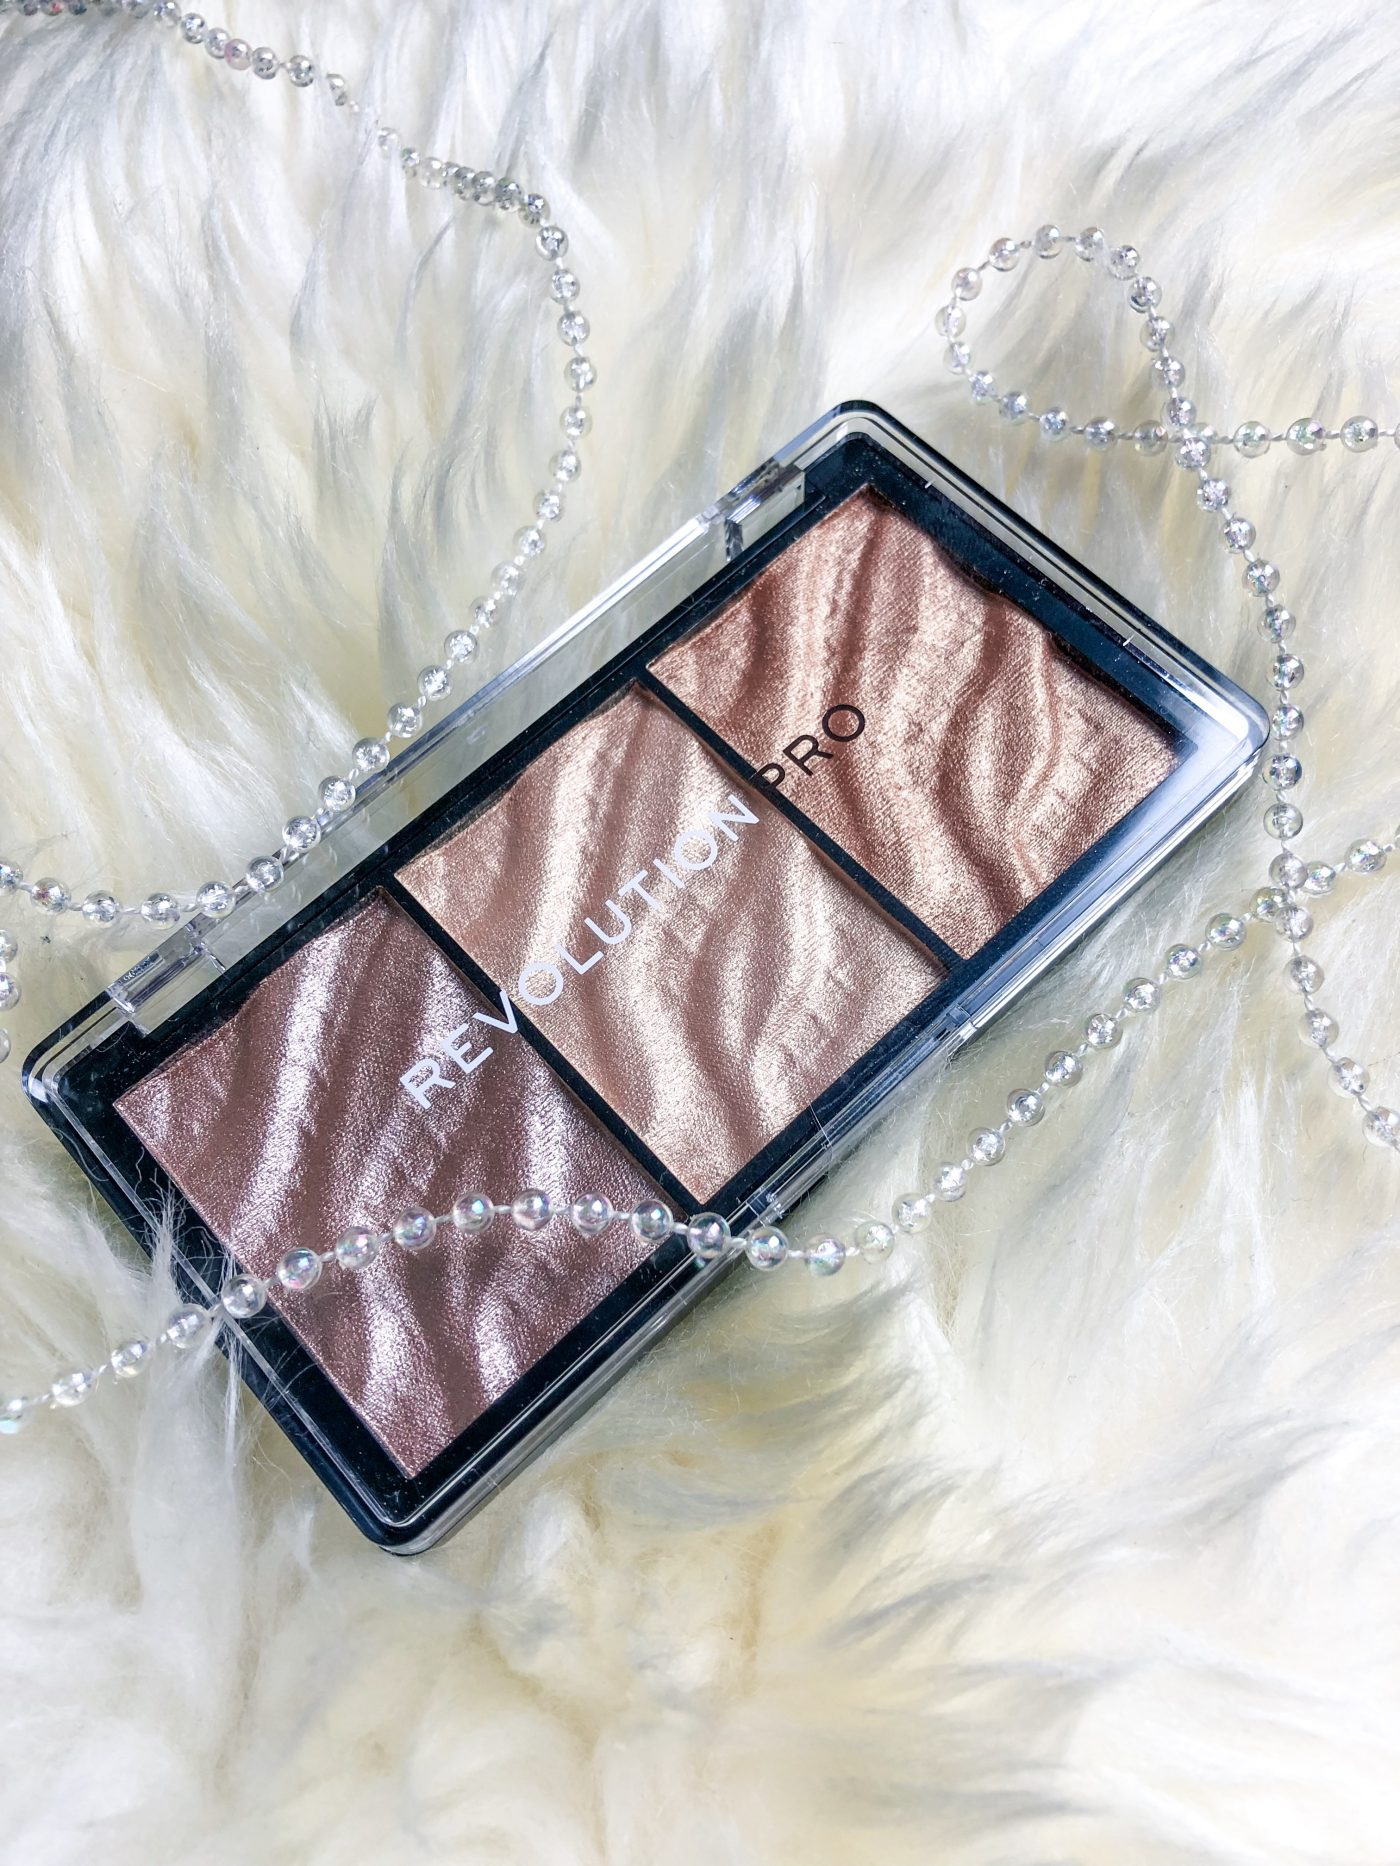 Revolution Pro Highlighter